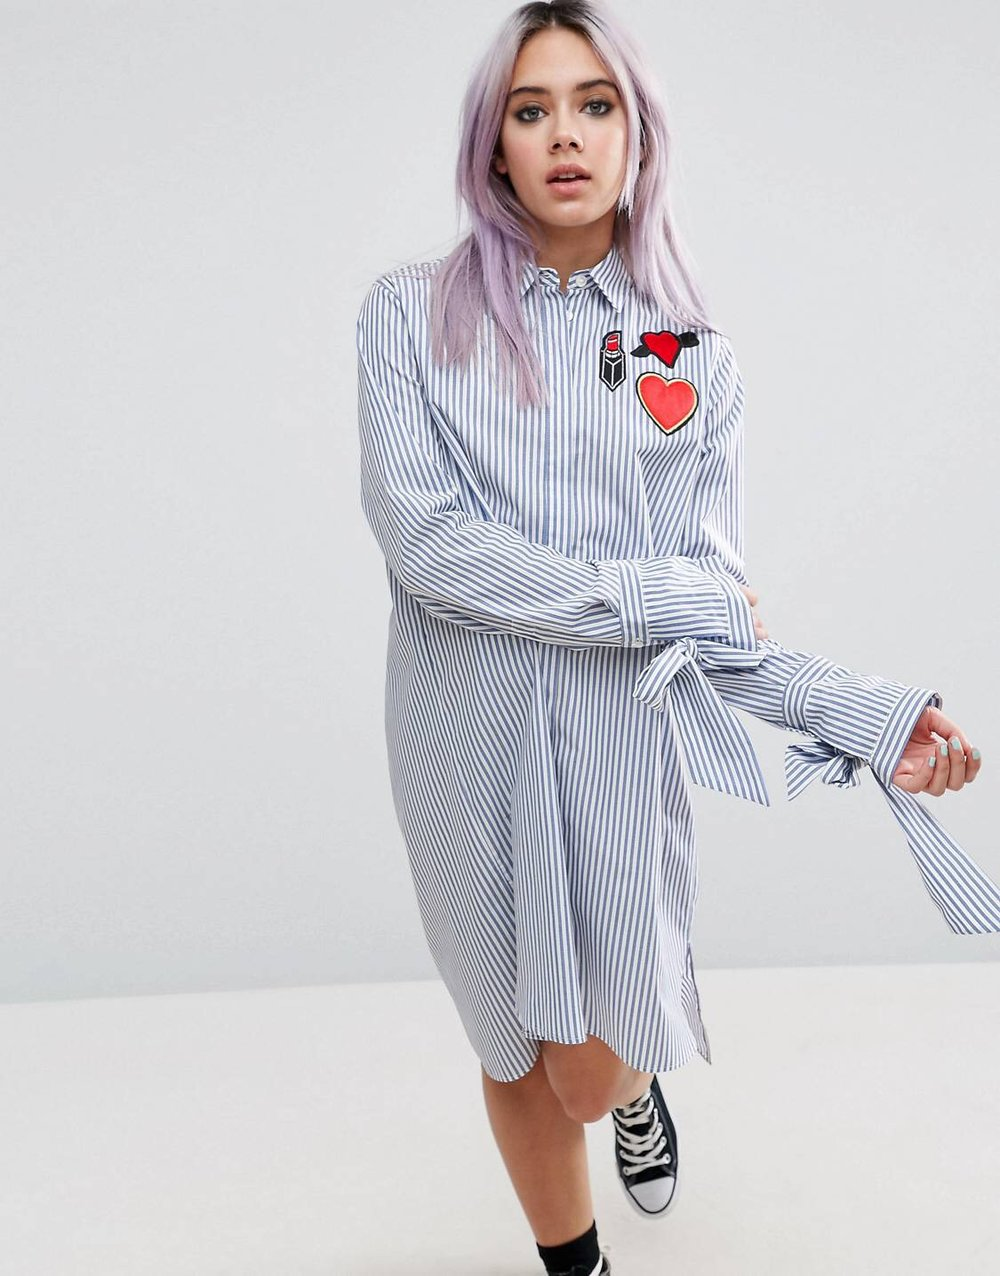 £19 ASOS Shirt Dress - Knee length shirt. I'm sold.